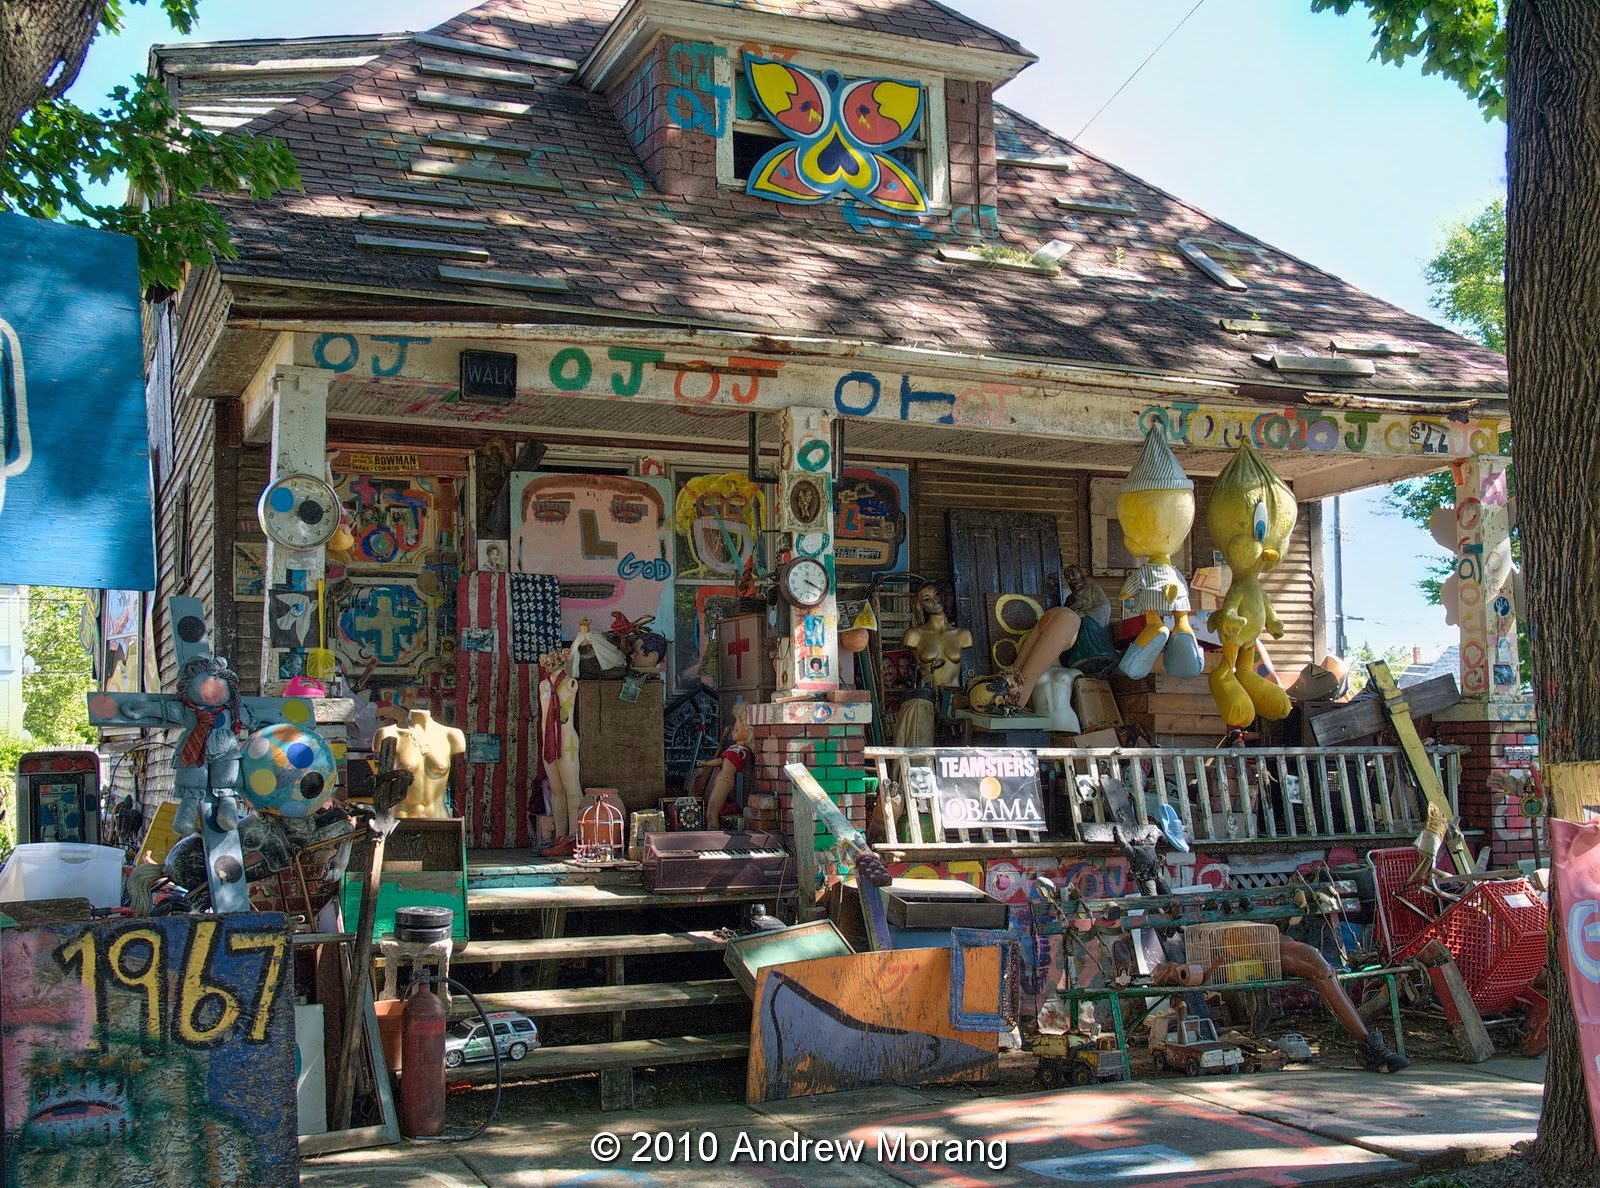 heidelberg project In a huge announcement yesterday, mark stryker of the detroit free press reports that the heidelberg project, detroit's best known public art installation, will be dismantled in the coming.